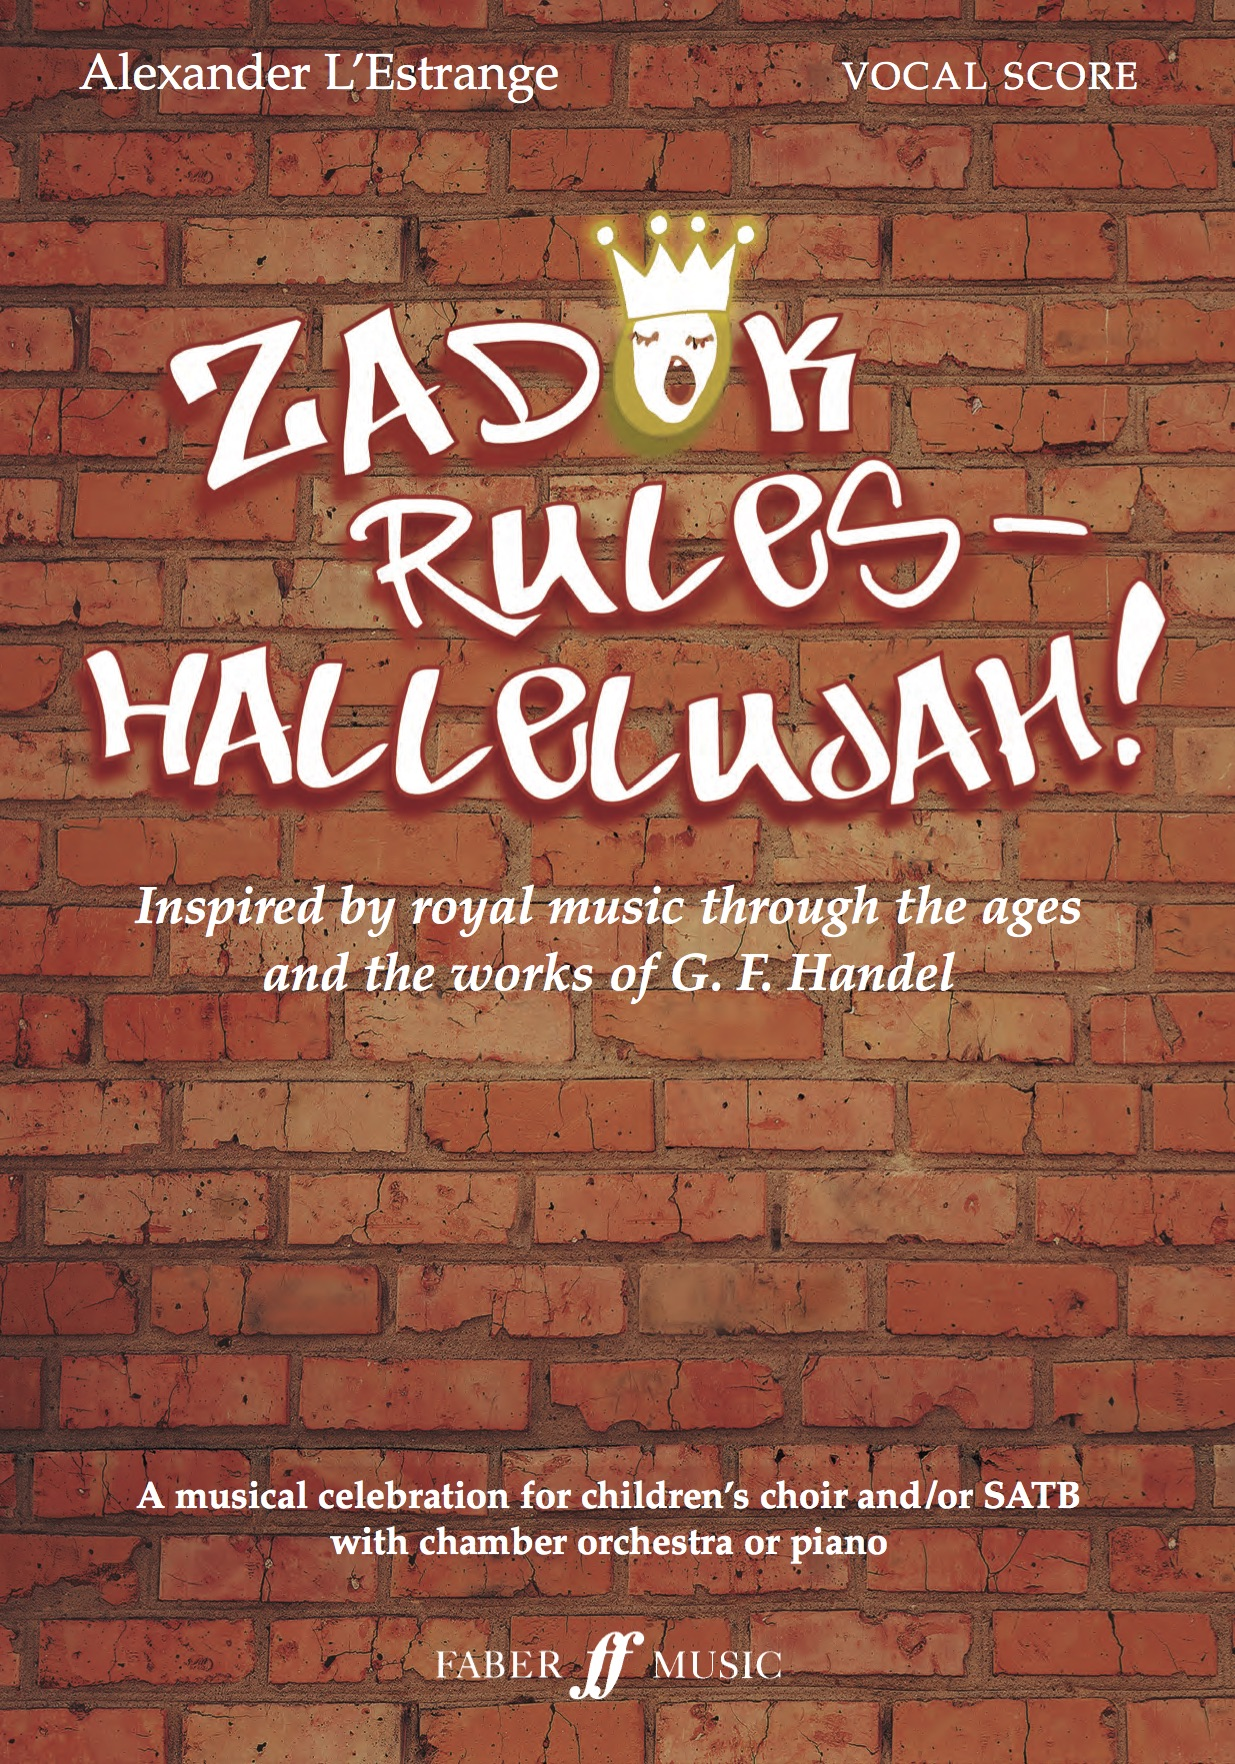 Zadok front cover reduced.jpeg